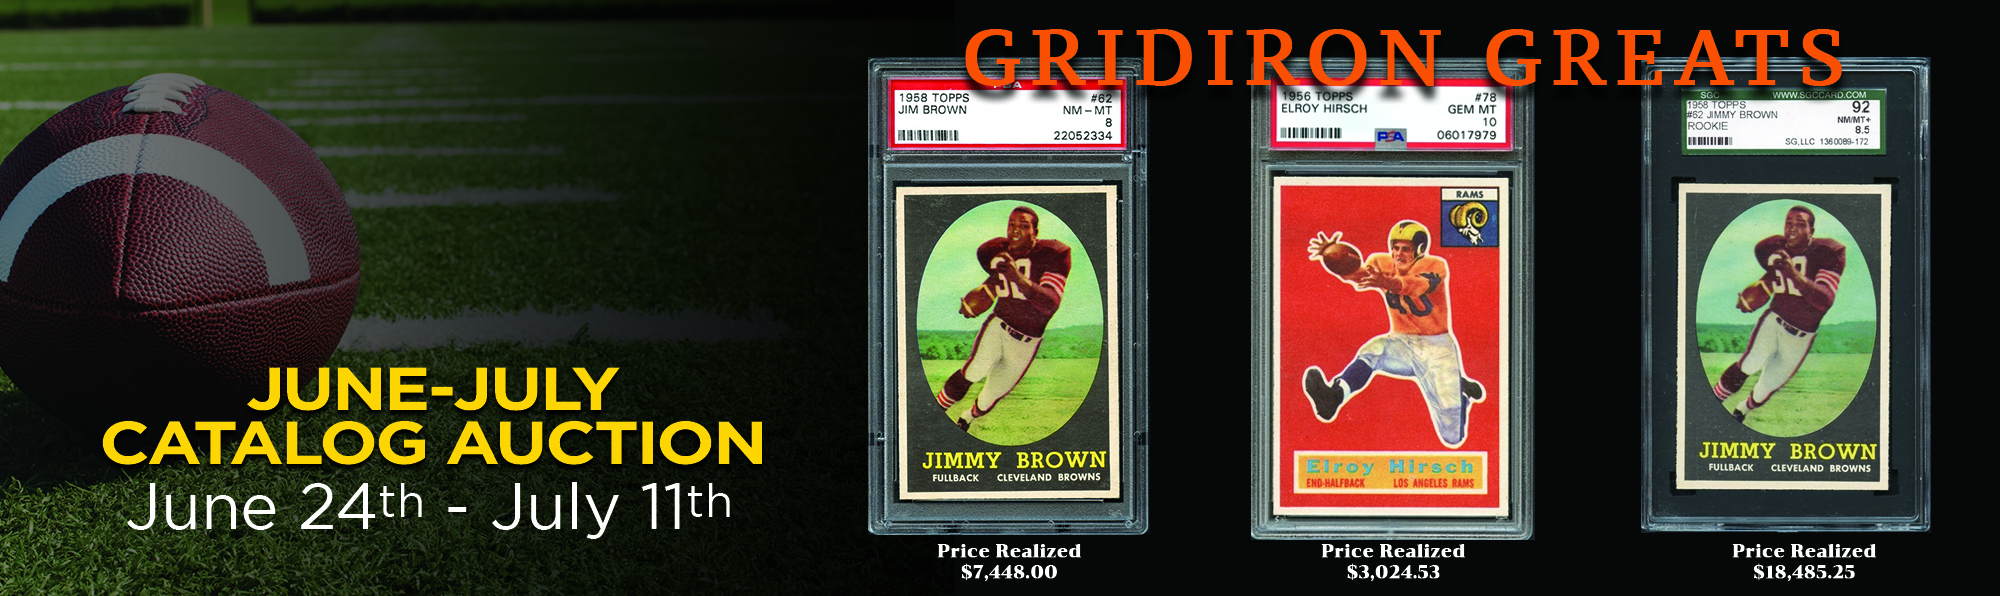 Gridiron Greats Graded Cards